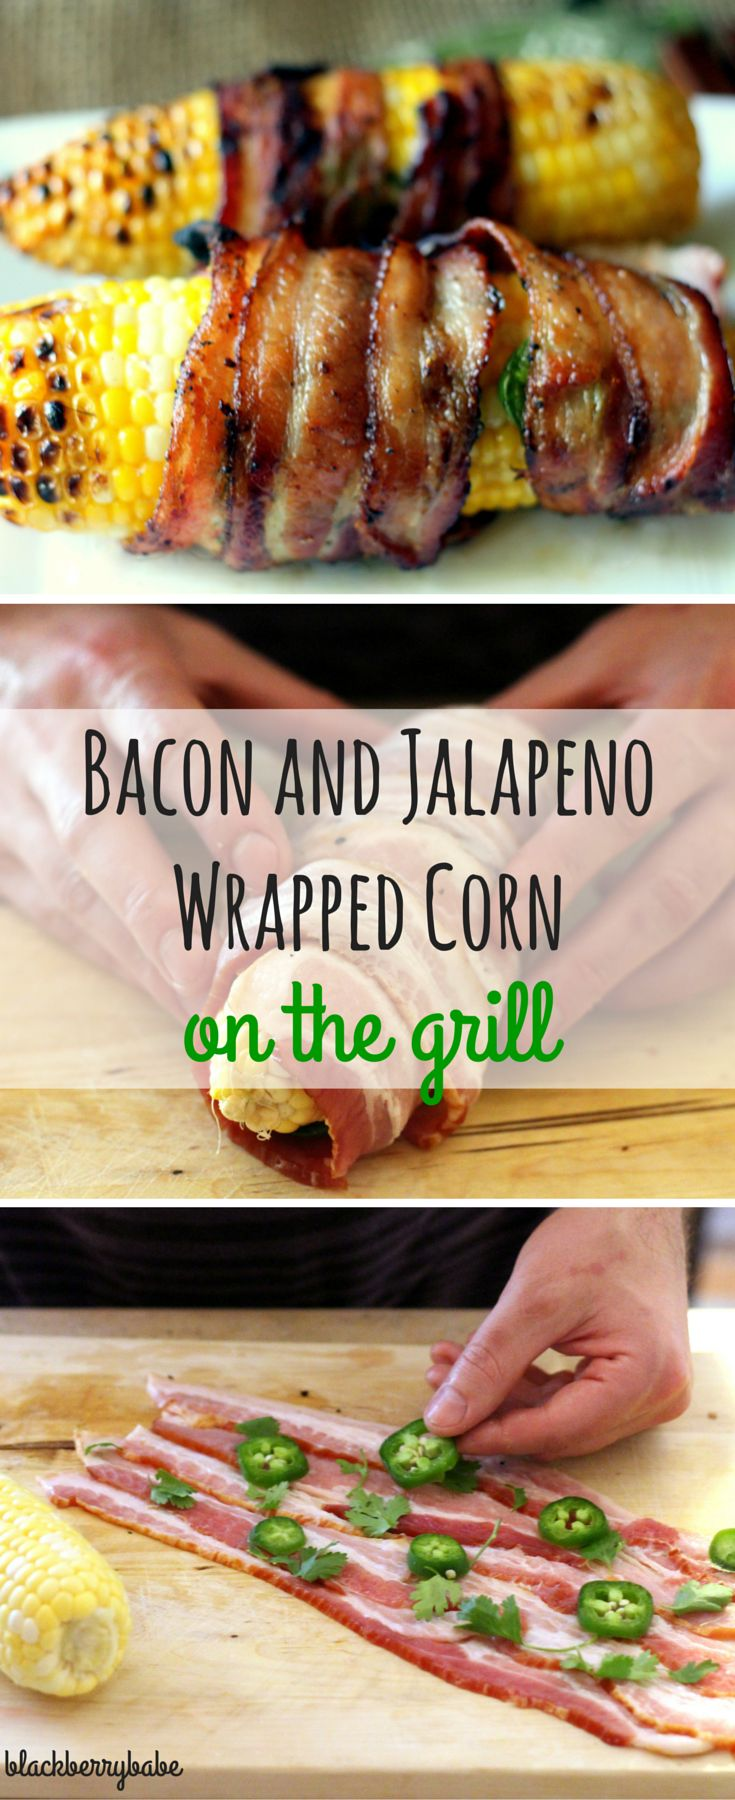 Absolutely incredible grilled corn wrapped in bacon, jalapeno and spices! So easy and the best flavor!